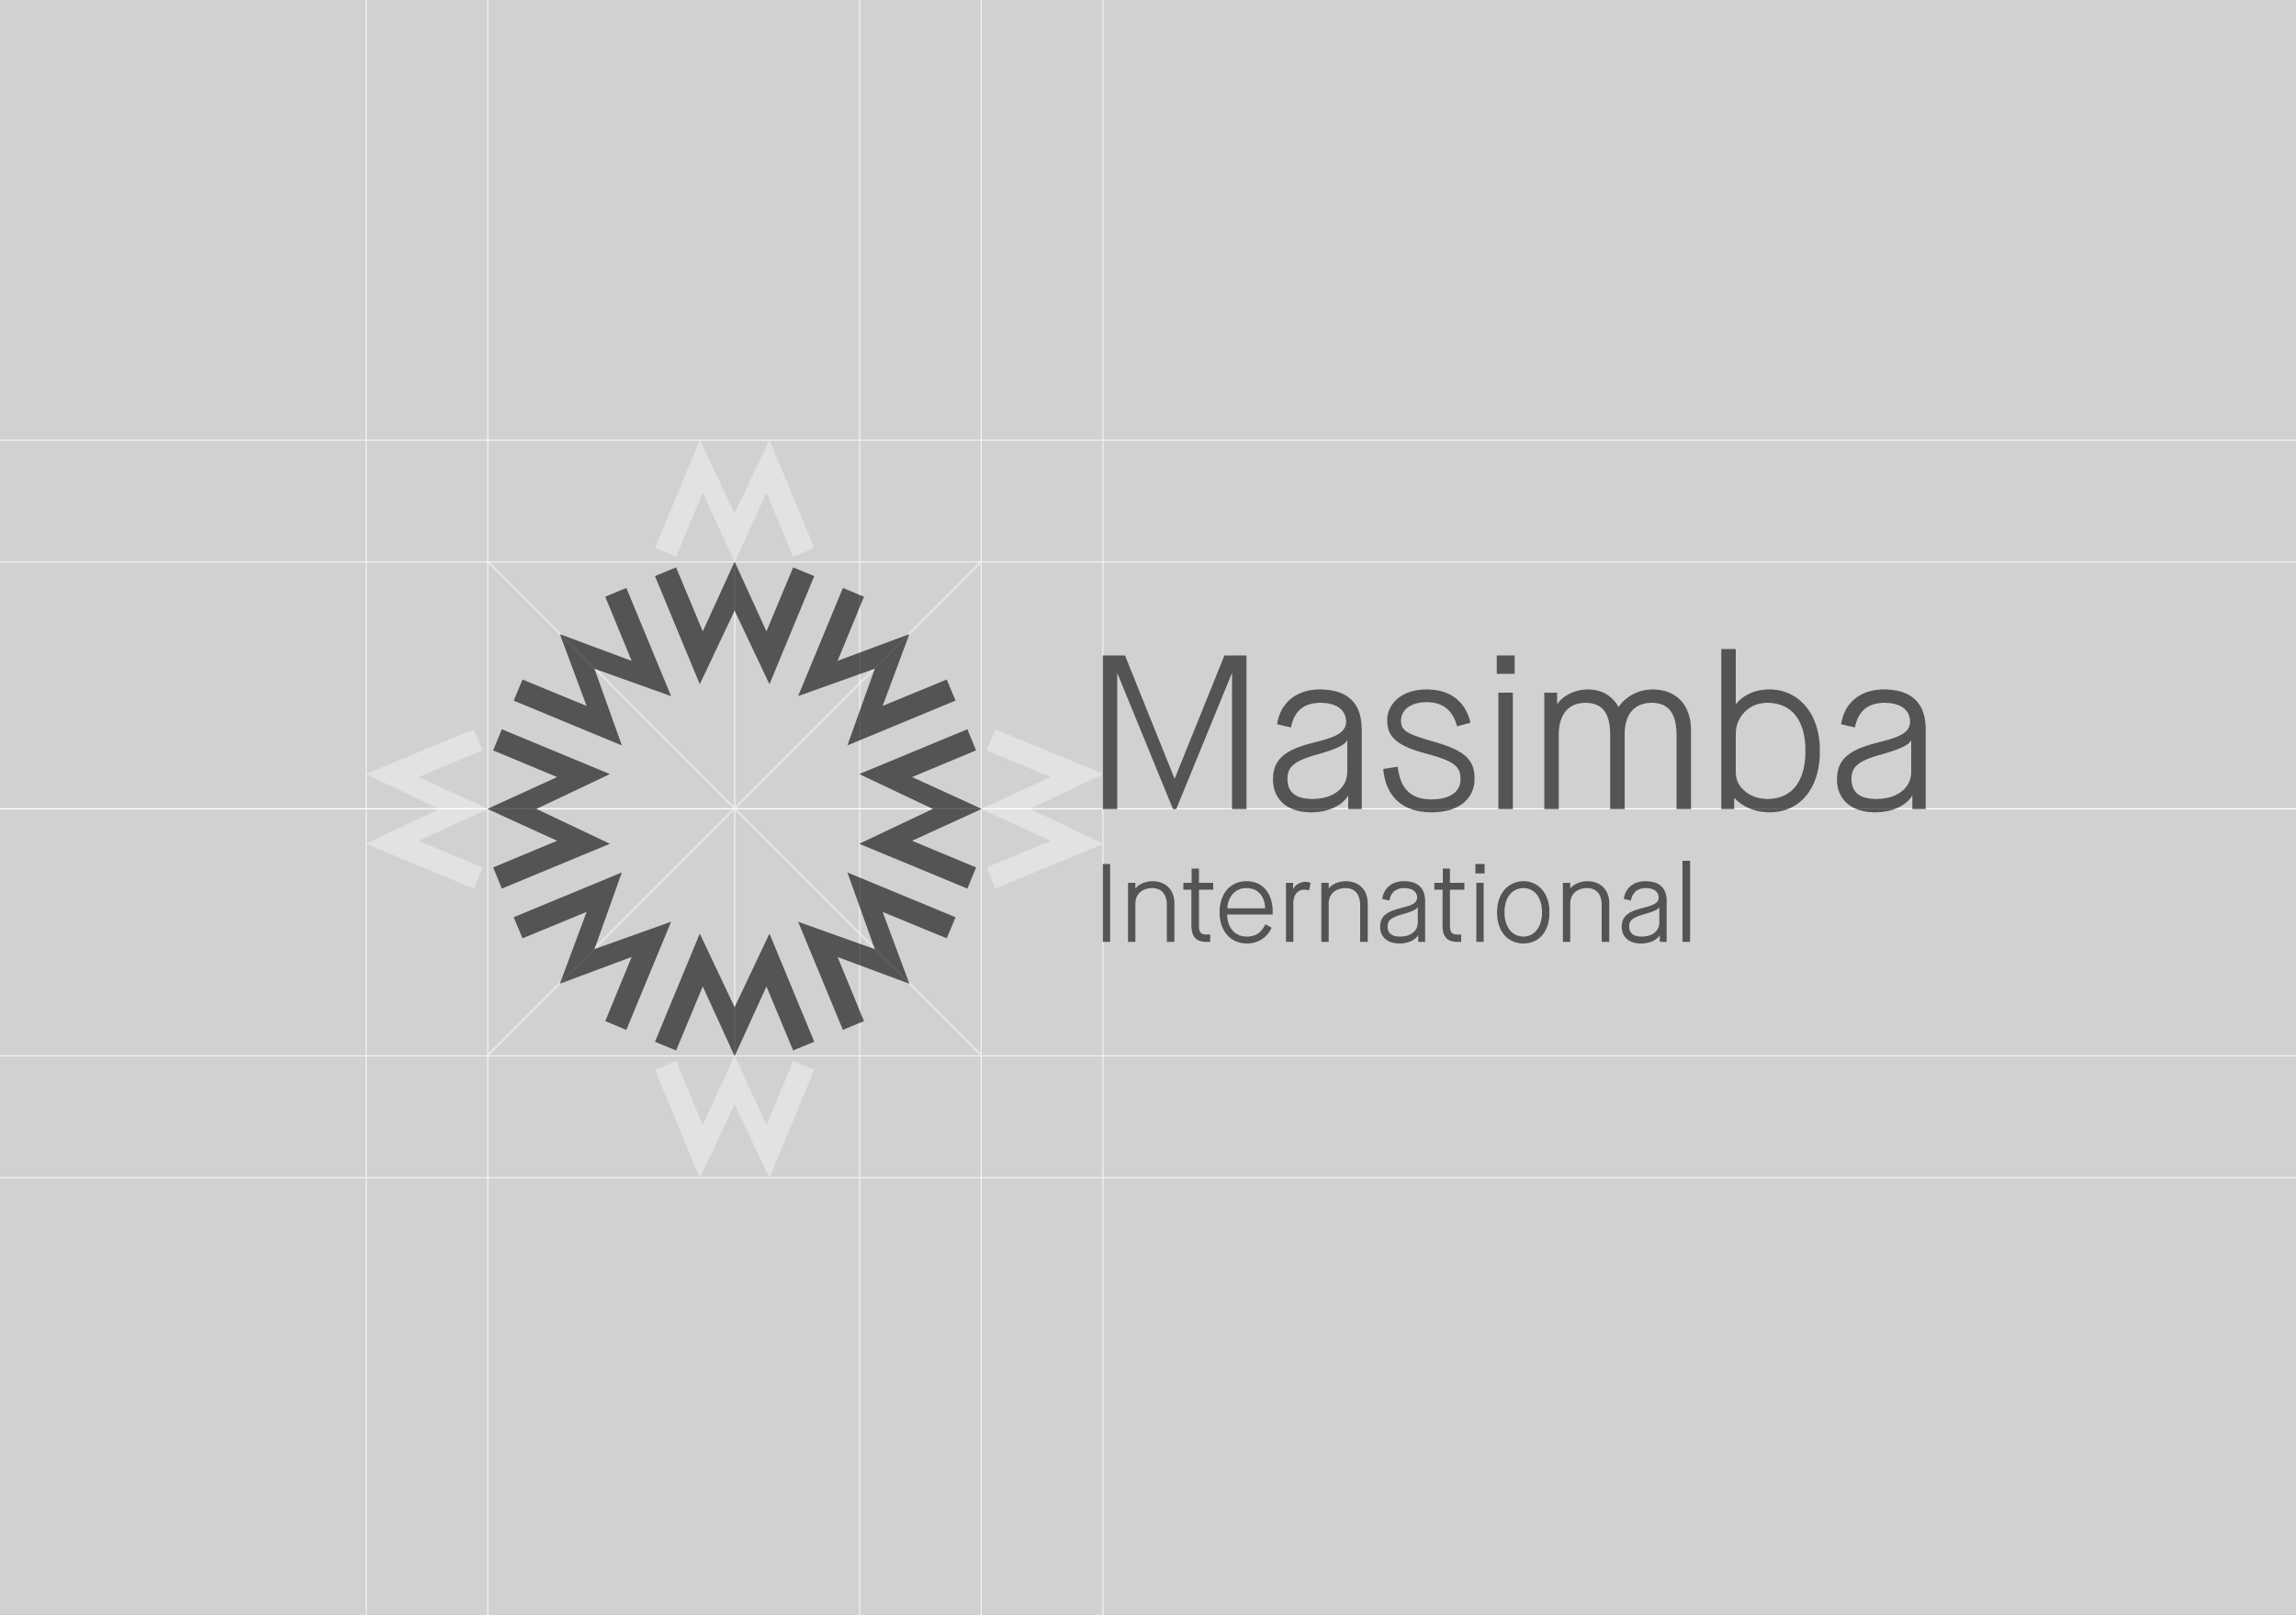 Masimba-identity-by-Ian-Whalley-Logo-construct-2.png